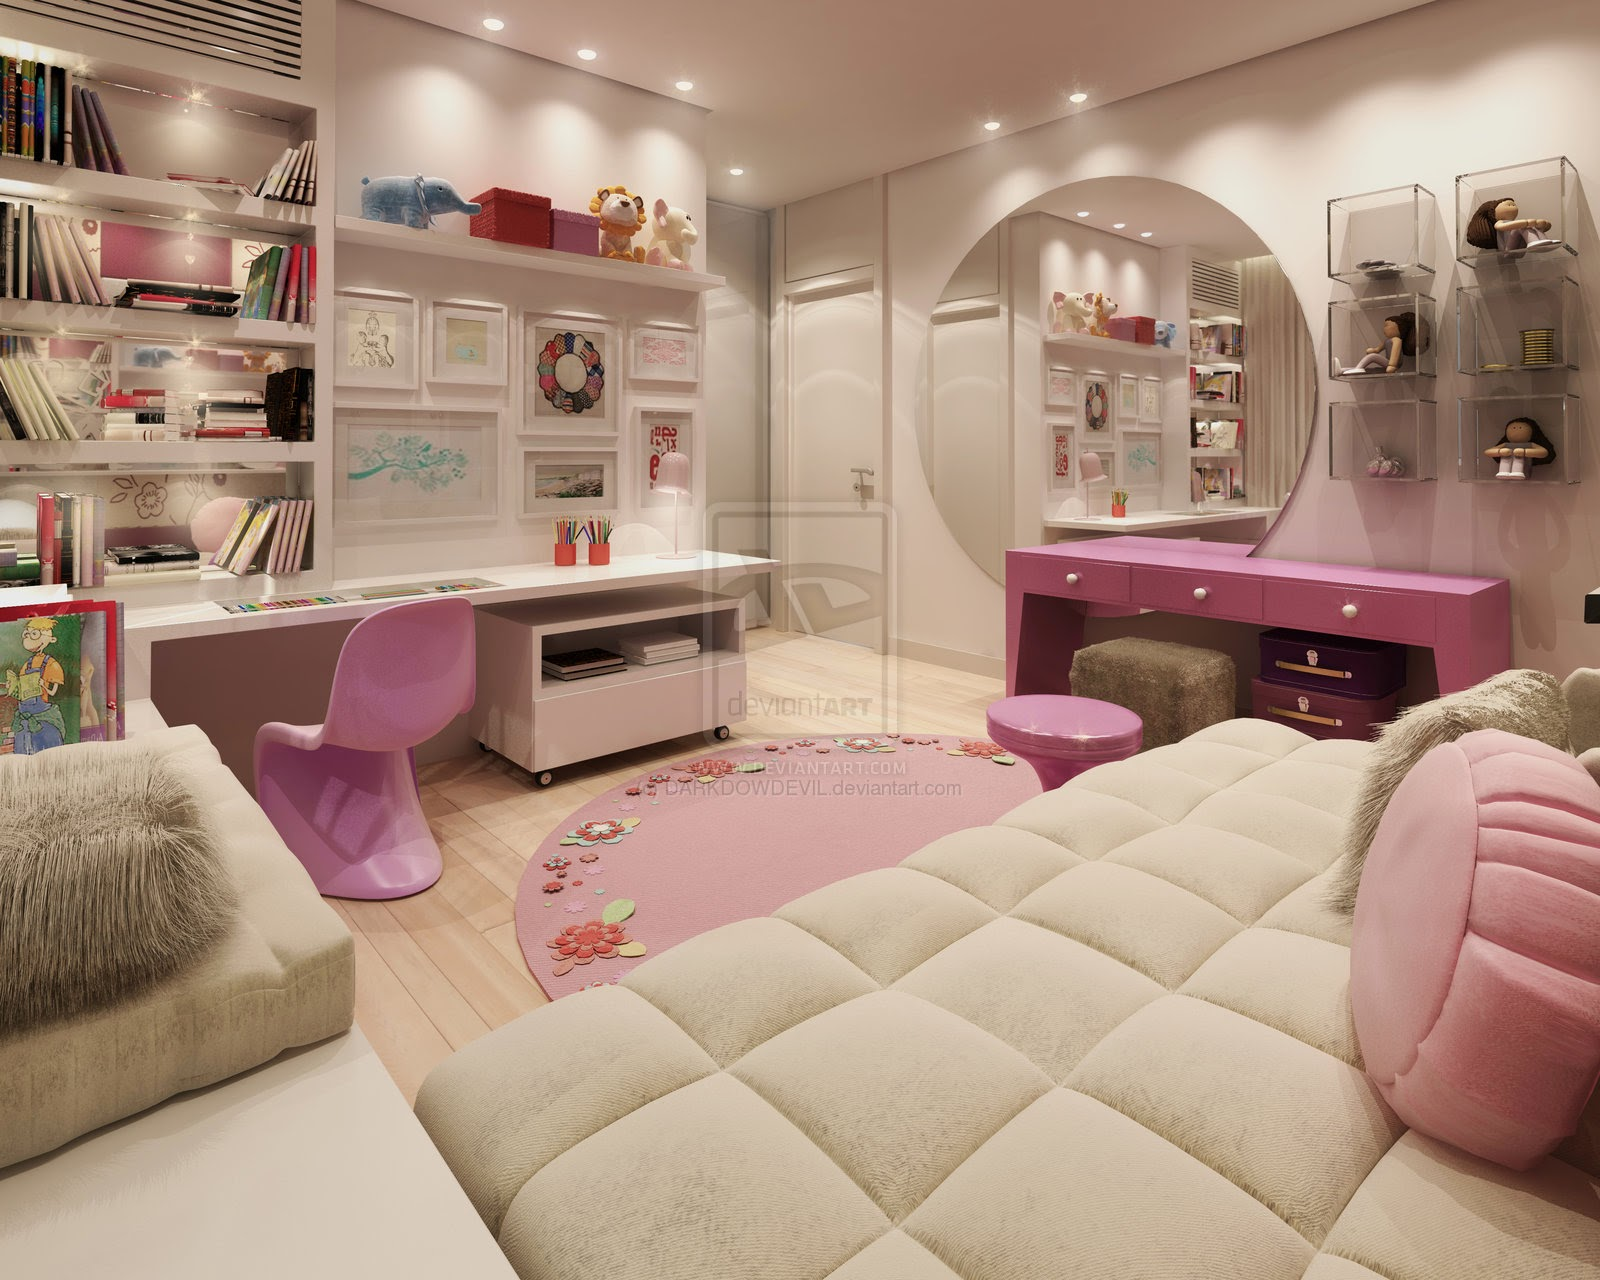 Cool Bedrooms For 2 Teenage Girls Girls And Teenage Bedroom Designs Girls And Teenage